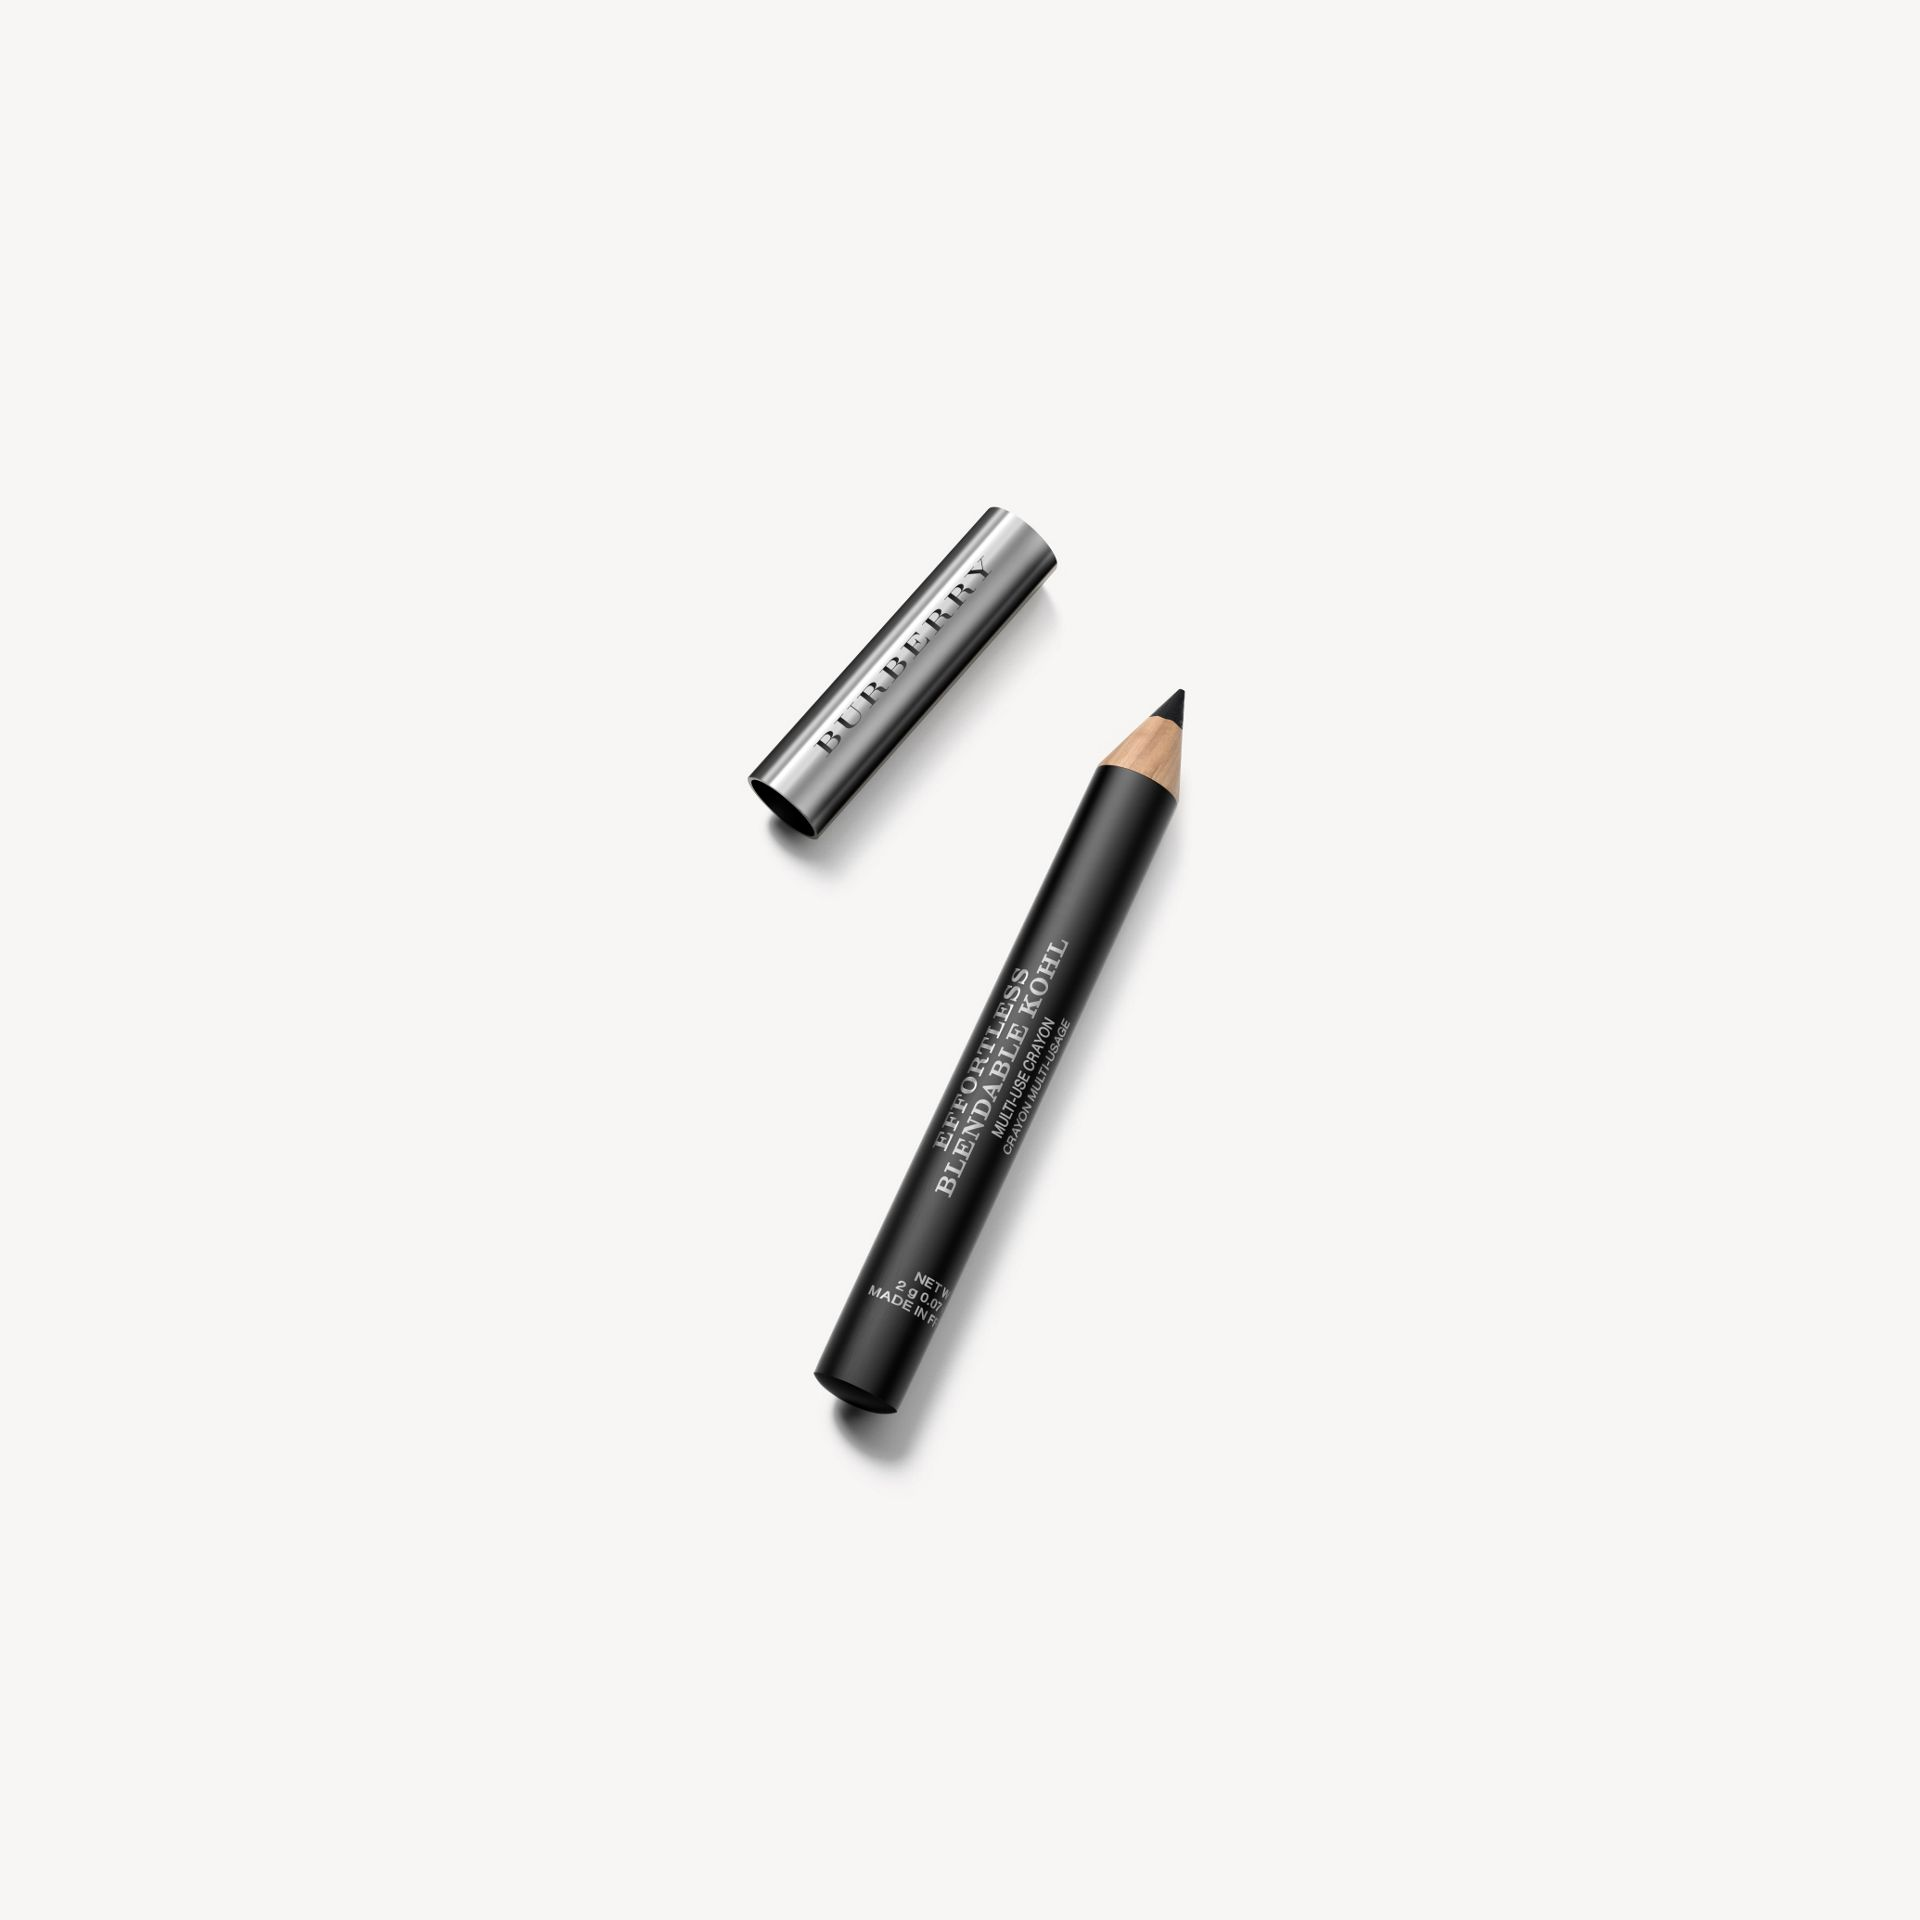 Карандаш Effortless Blendable Kohl с точилкой, оттенок Jet Black № 01 - изображение 1